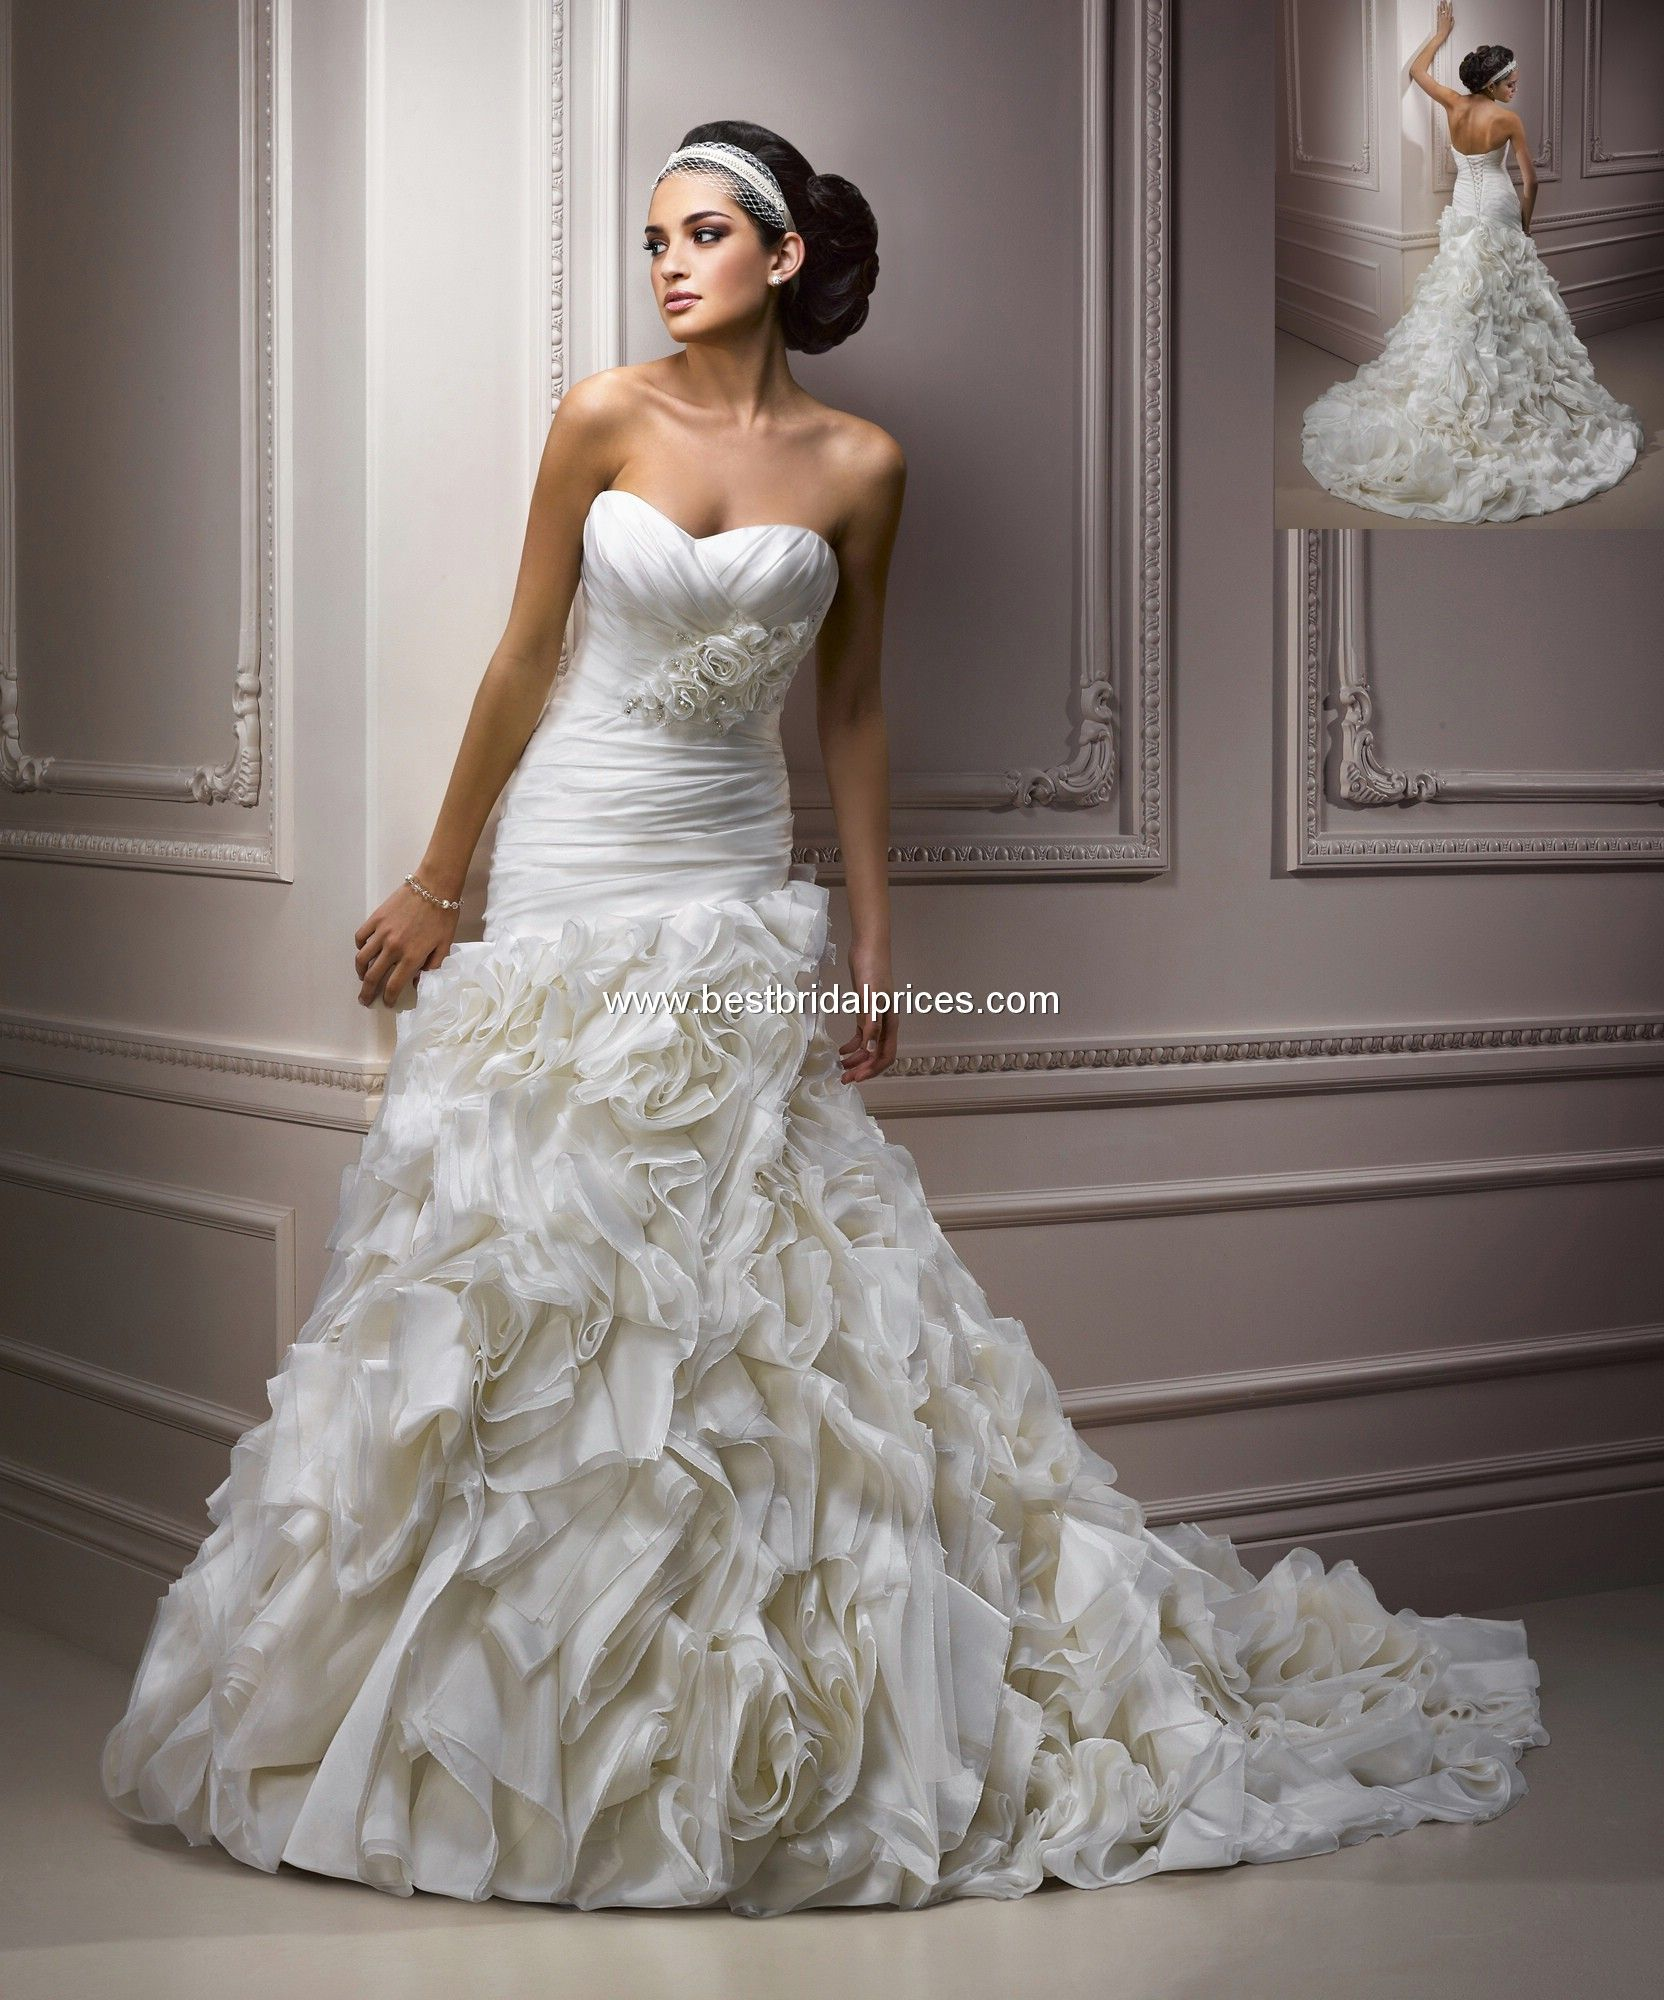 1000  images about Wedding dress ideas on Pinterest - Beaded ...